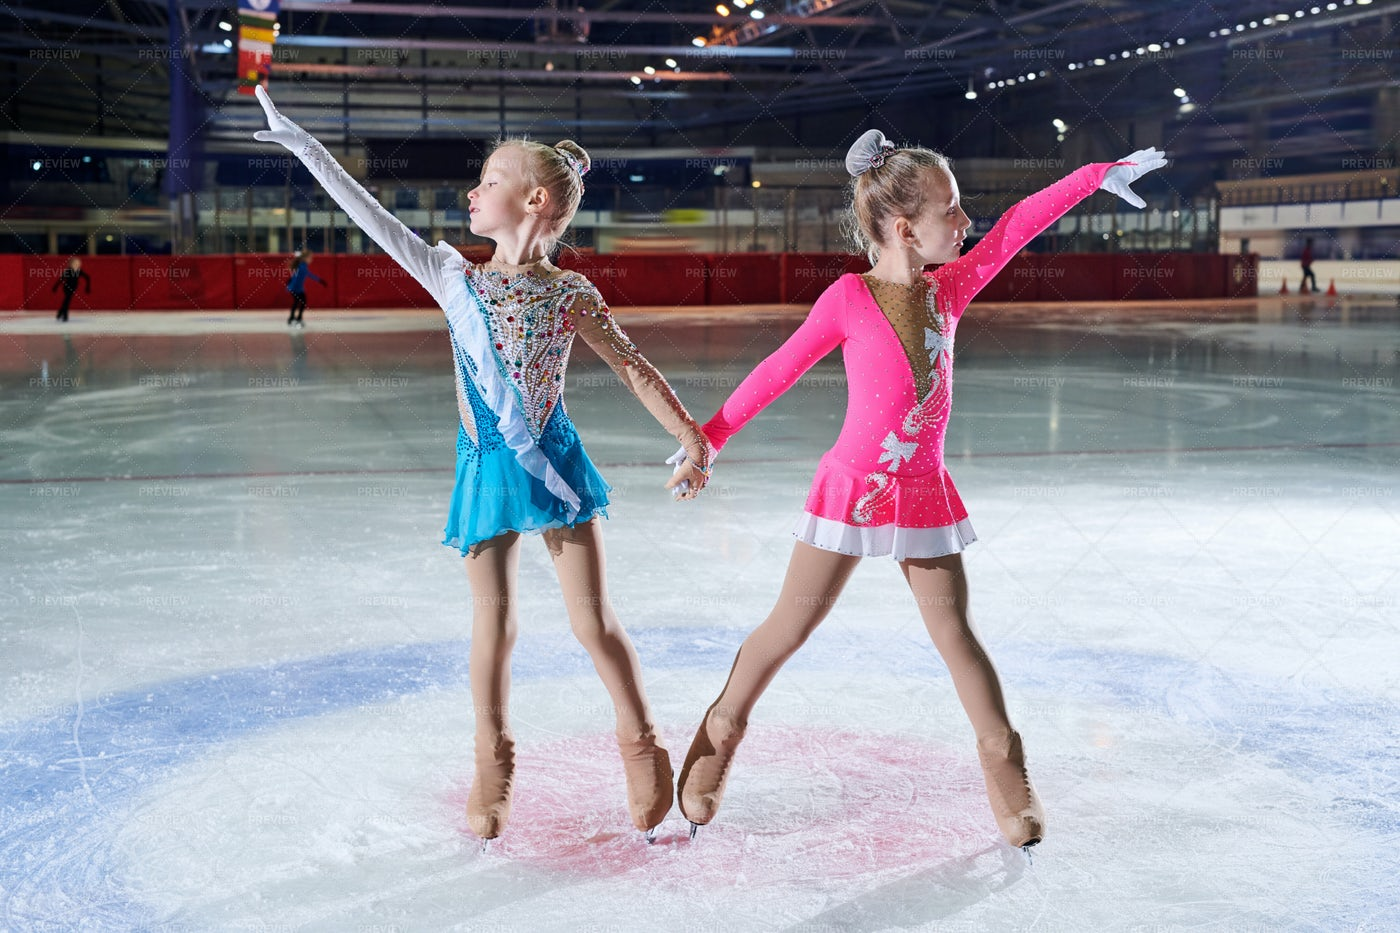 Two Talented Little Figure-Skaters: Stock Photos